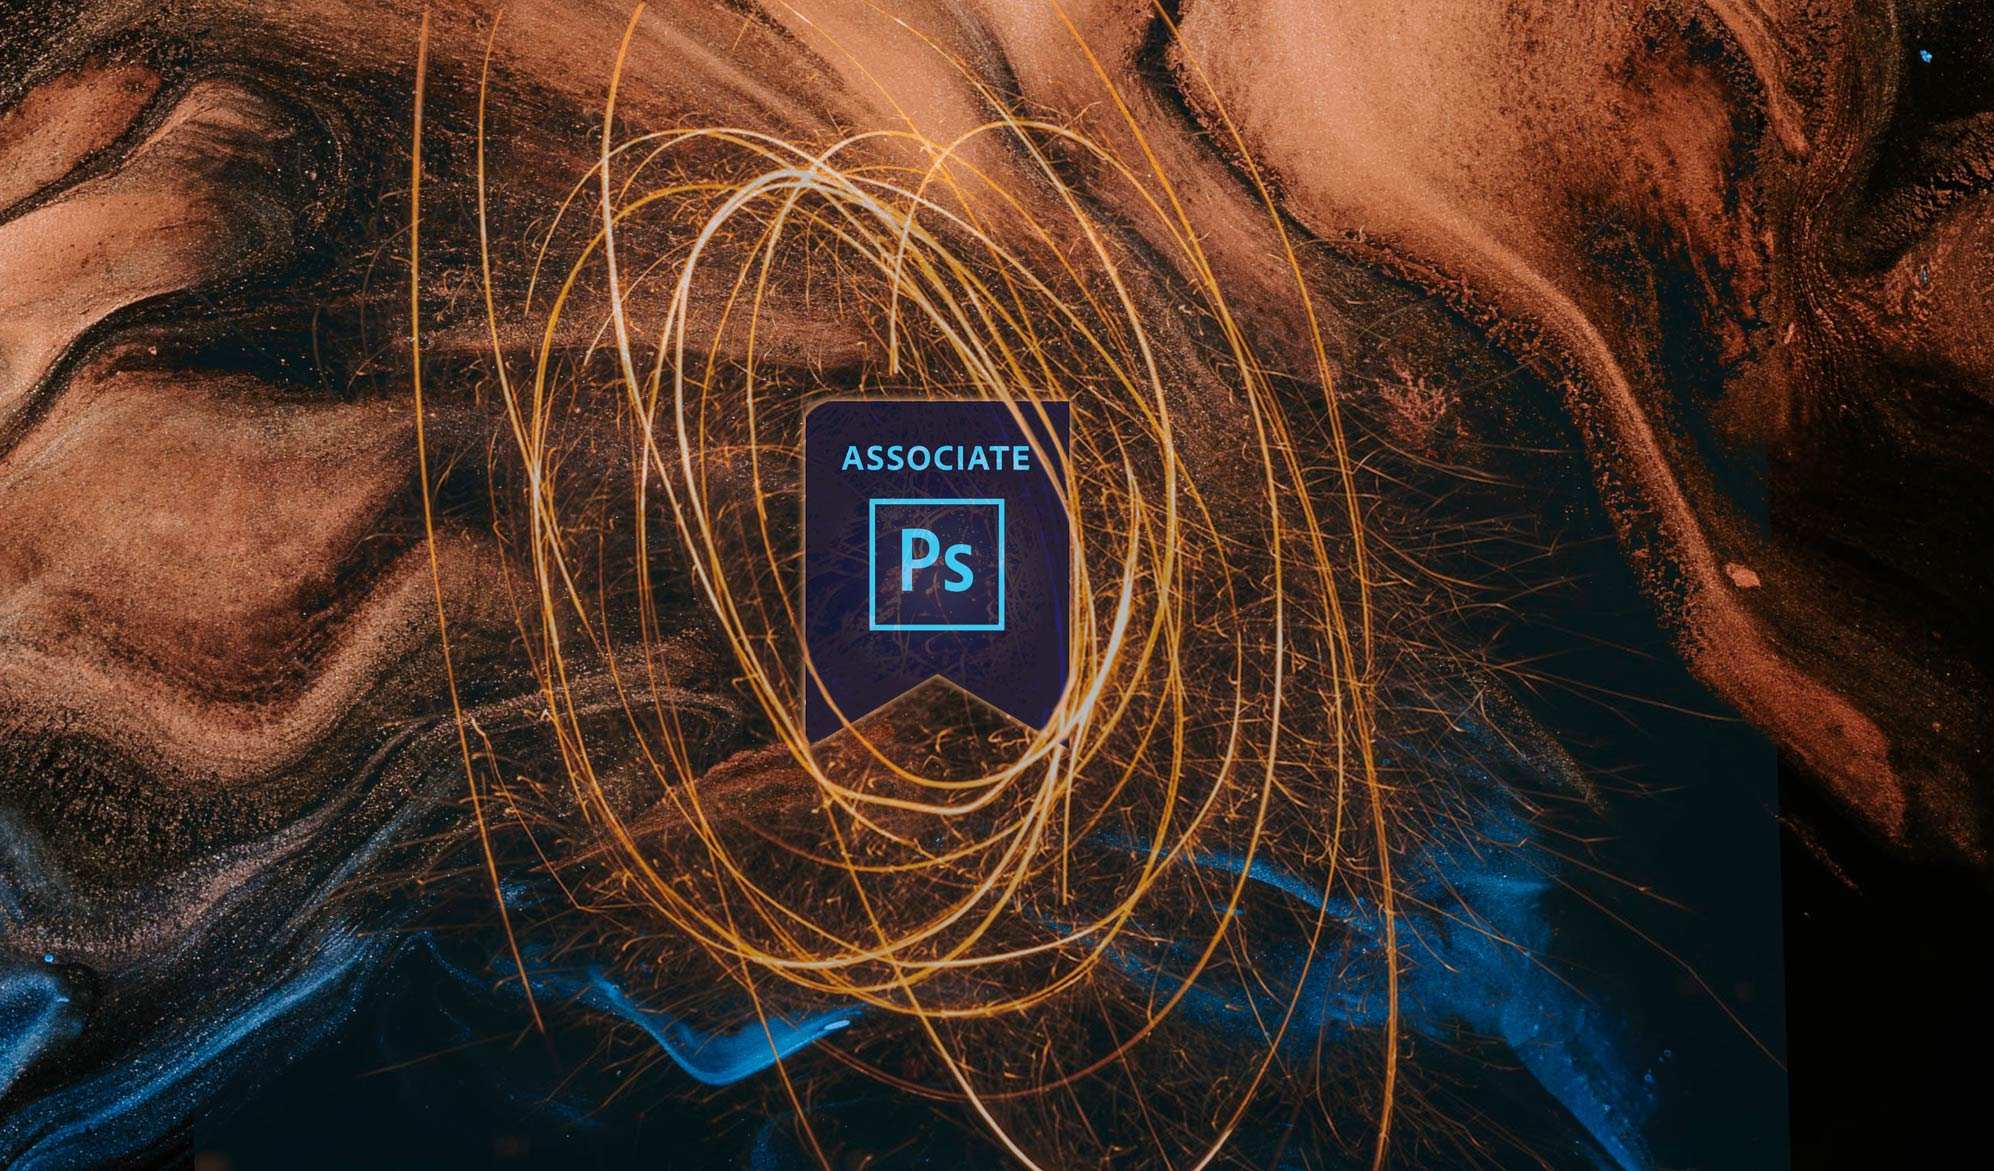 Adobe Certified Associate badge for photoshop